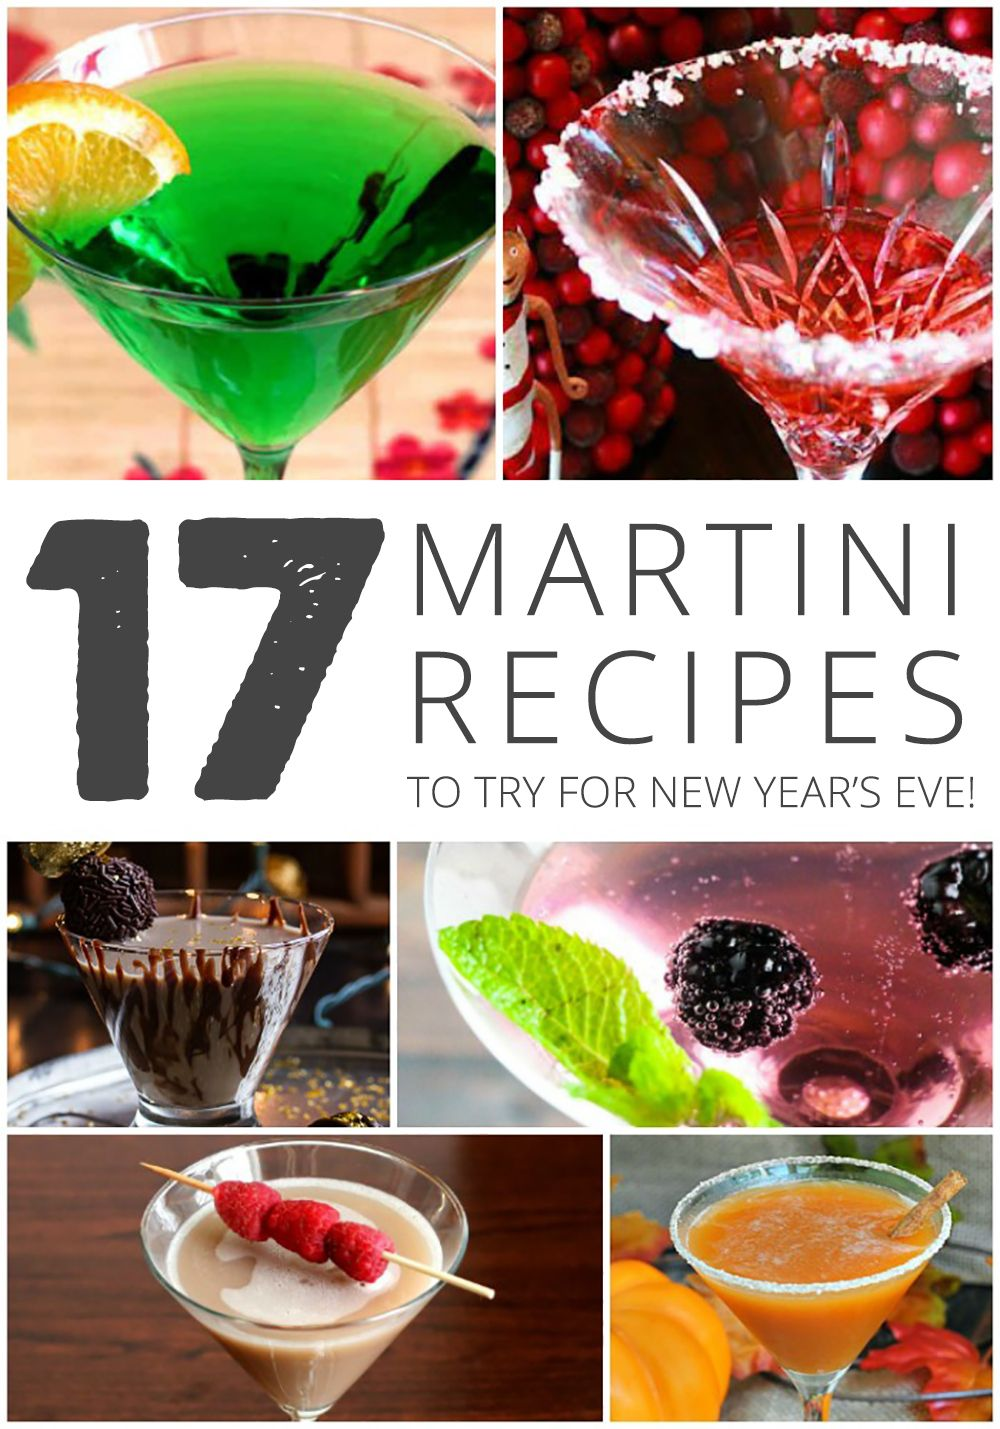 17 Yummy Martini Recipes to Try for New Year's Eve